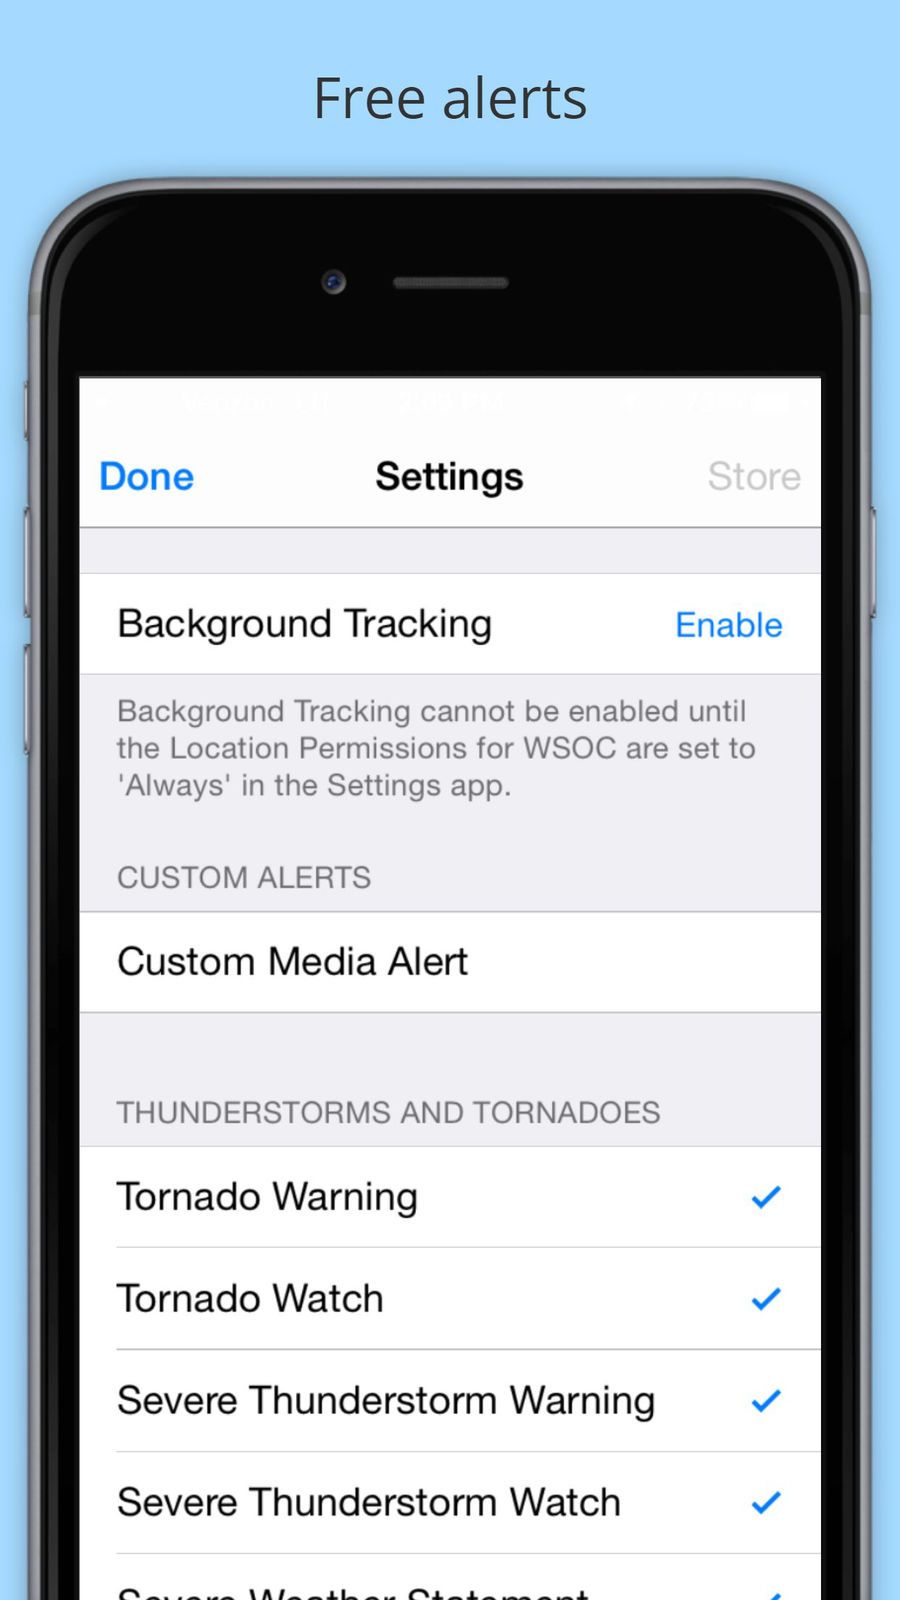 WSOC-TV Channel 9 Weather App #Media#Cox#Group#ios | Apple